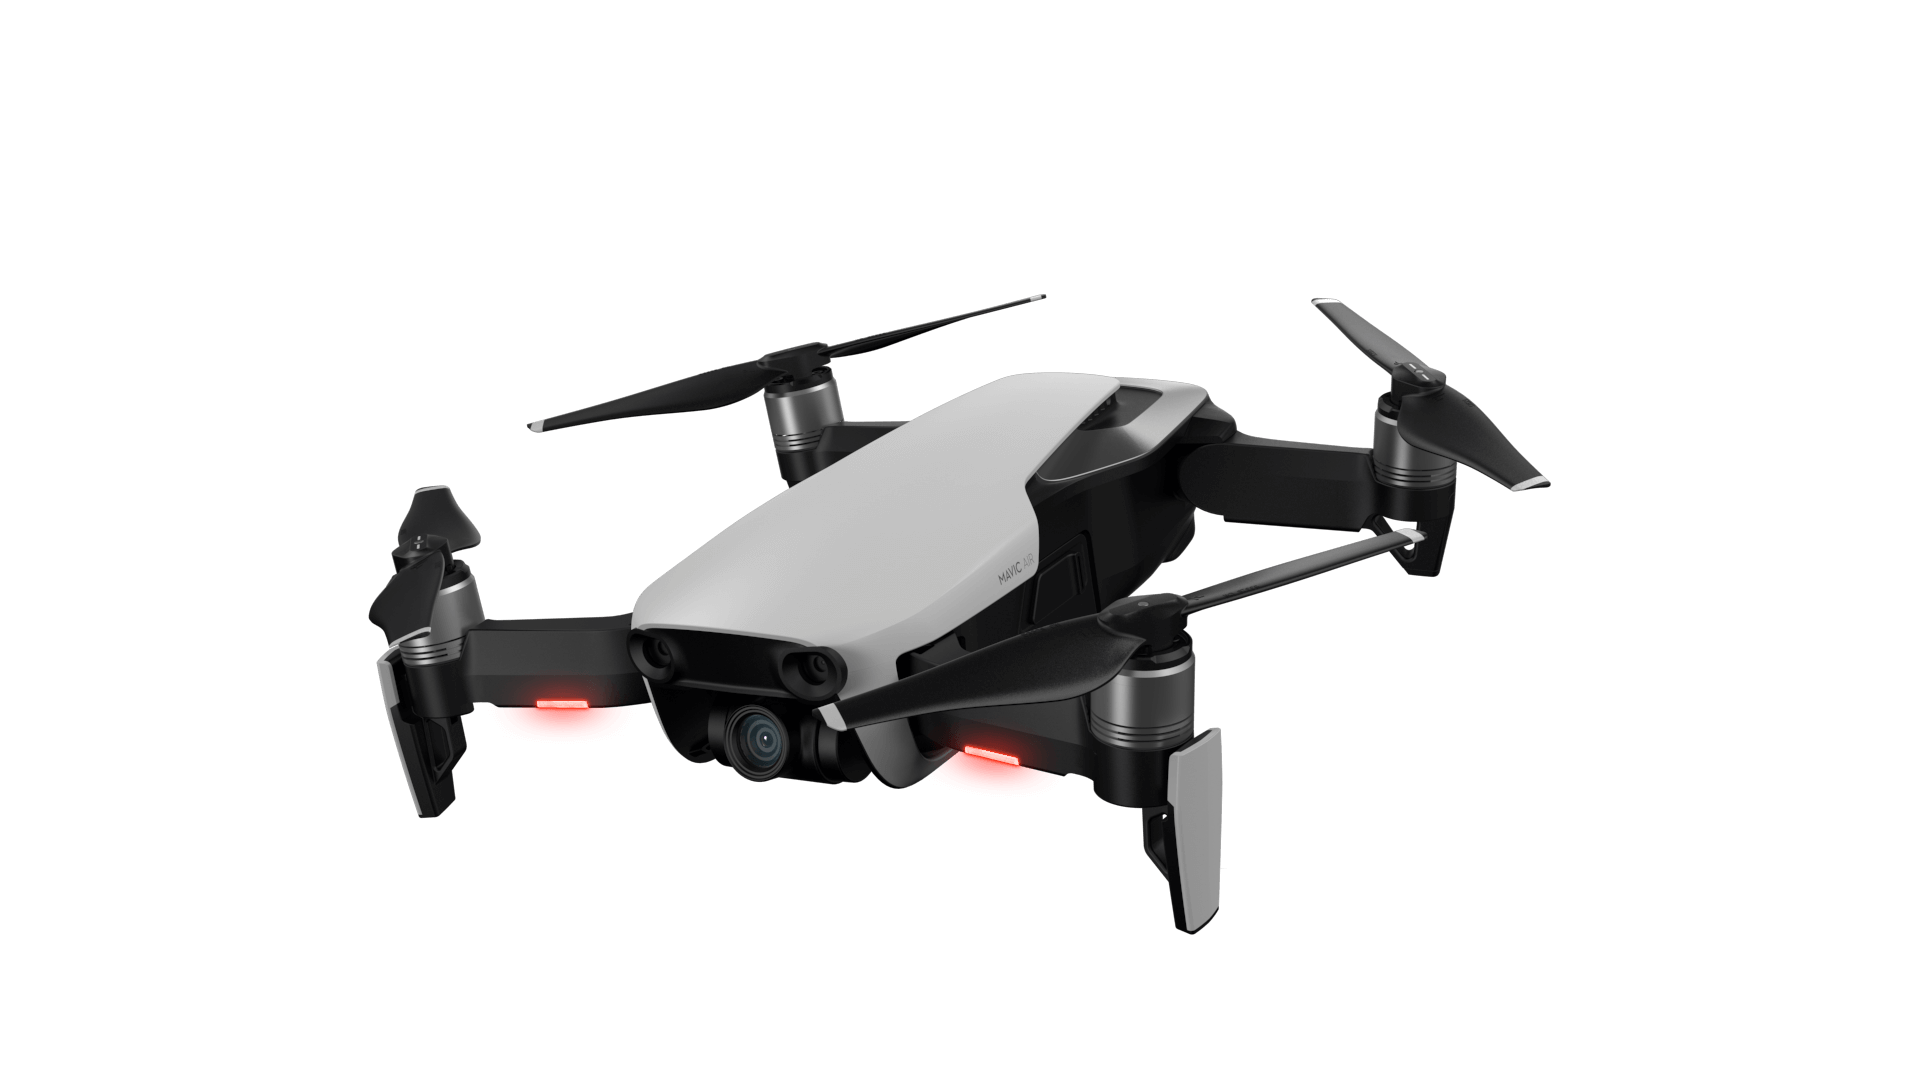 uploads drone drone PNG155 4